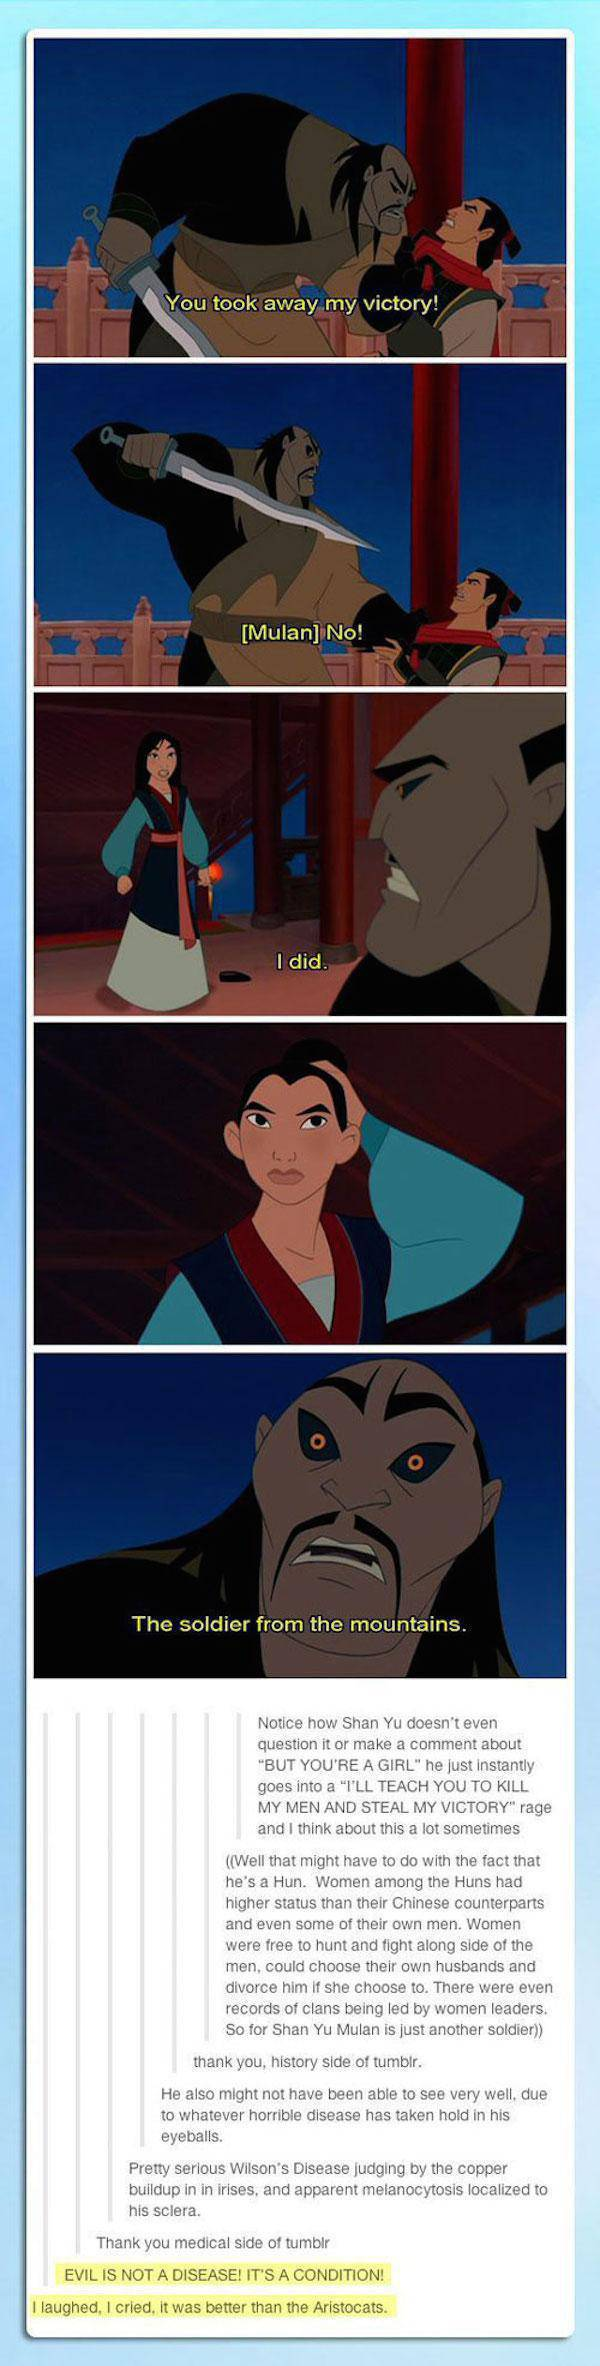 Disney Films Have Many Hidden Gems That You've Probably Never Appreciated